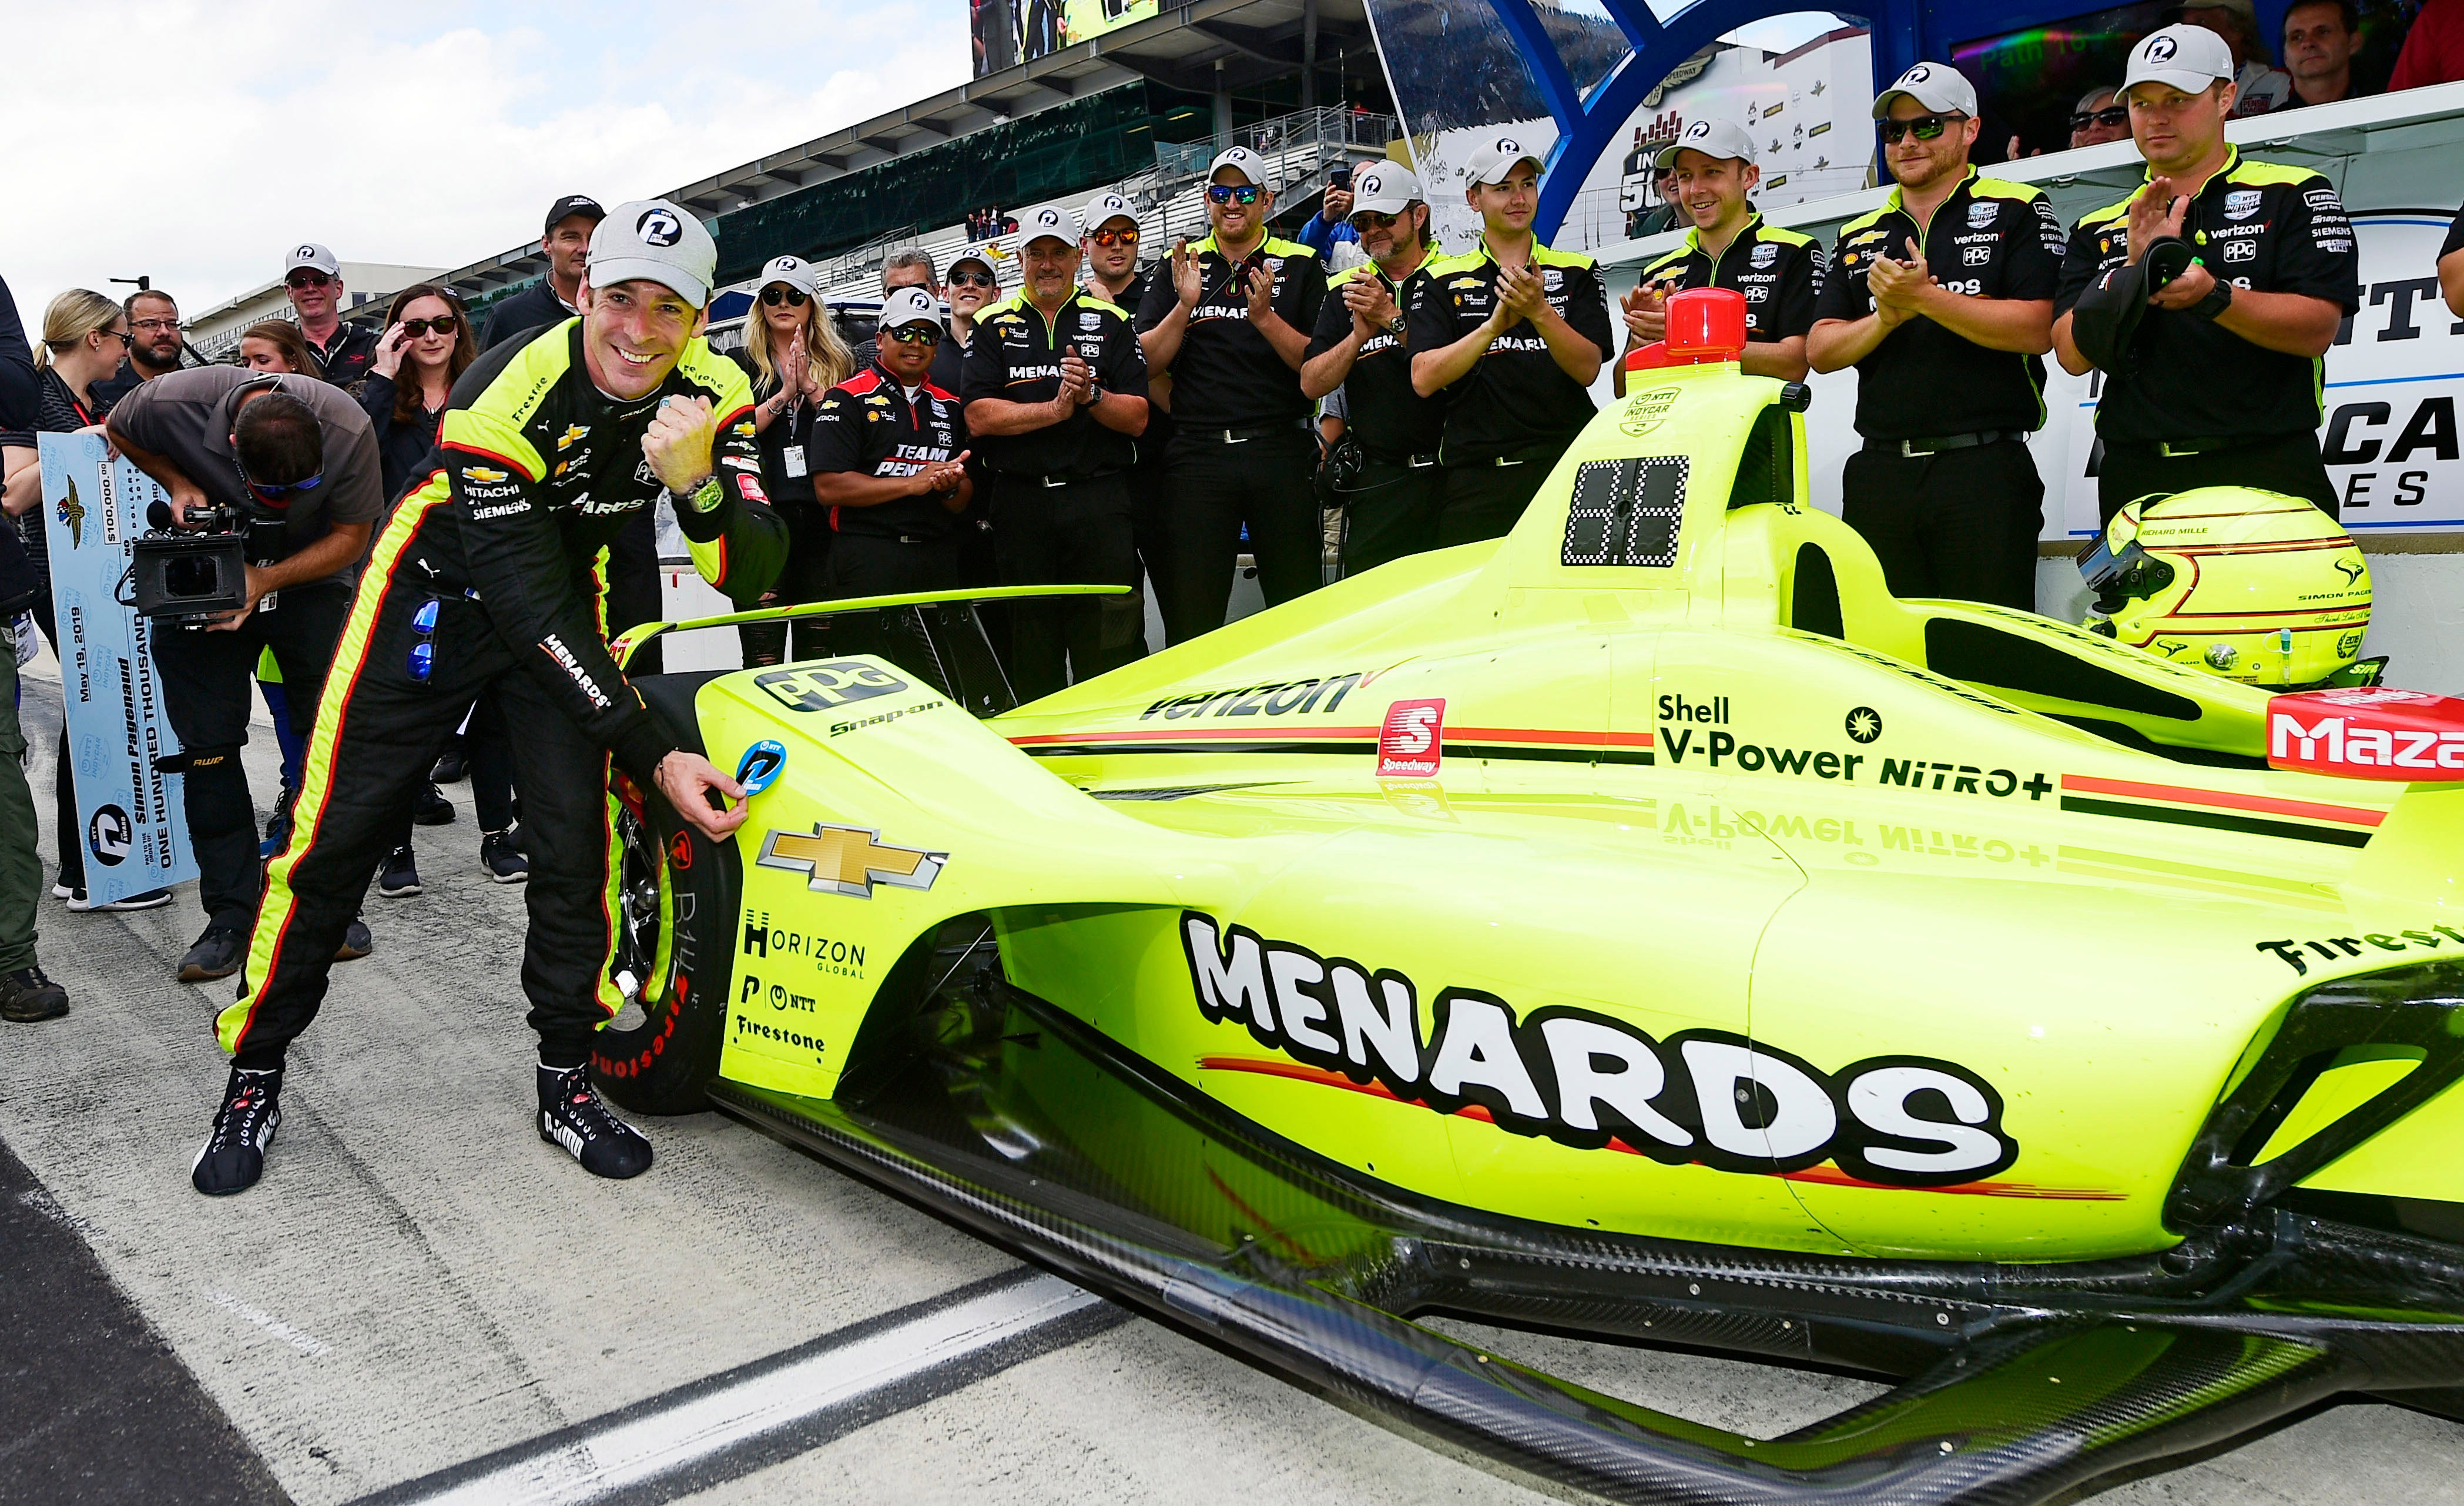 Indianapolis 500: Preview and predictions